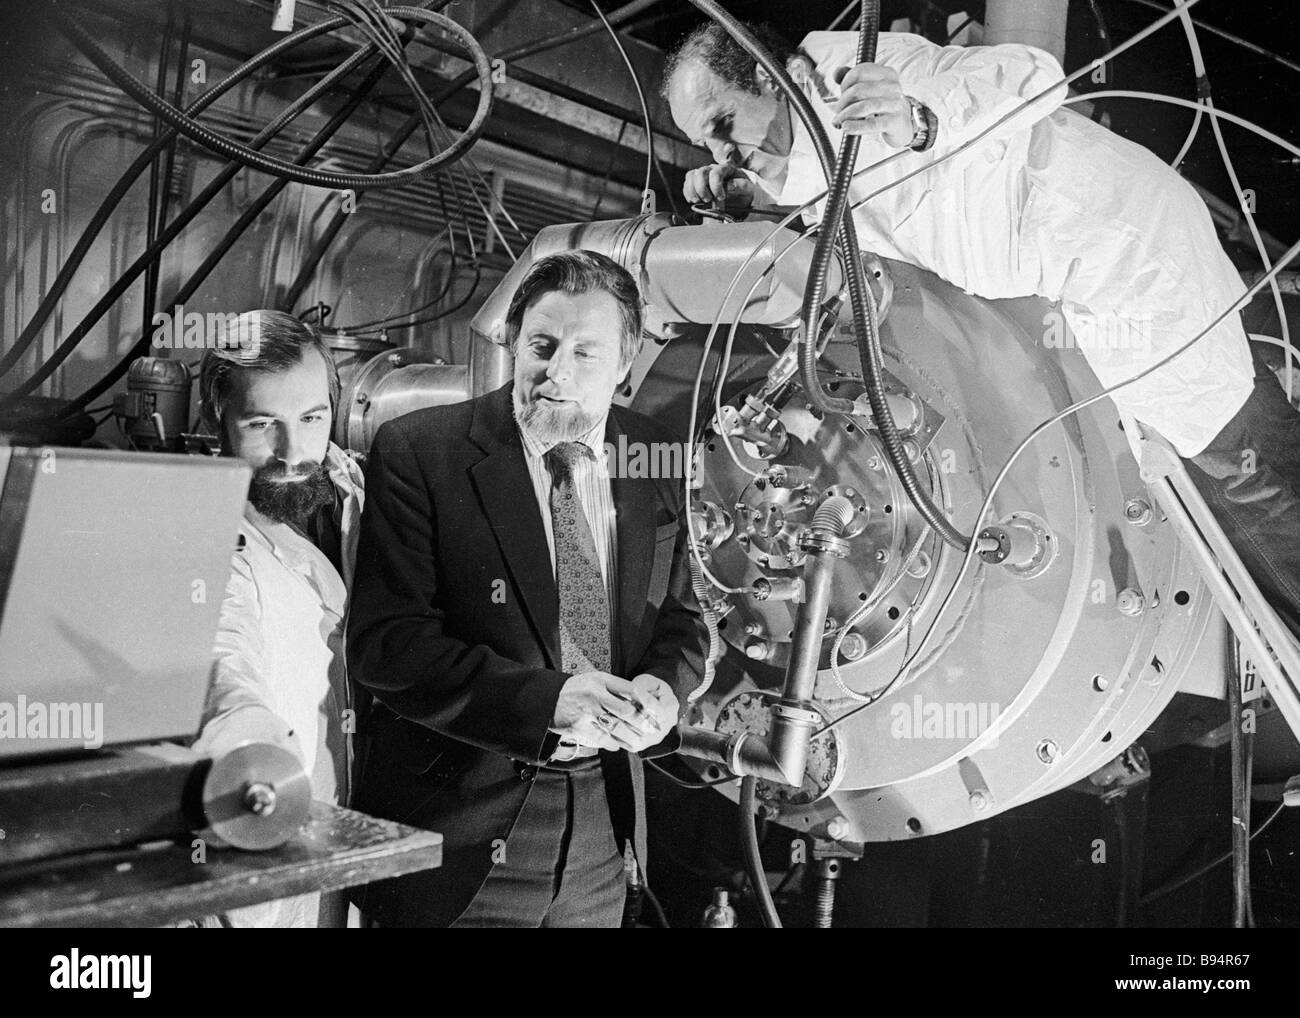 Researchers of the Yefremov Electrophysical Equipment Research Institute conducting an experiment on the Neva accelerator - Stock Image